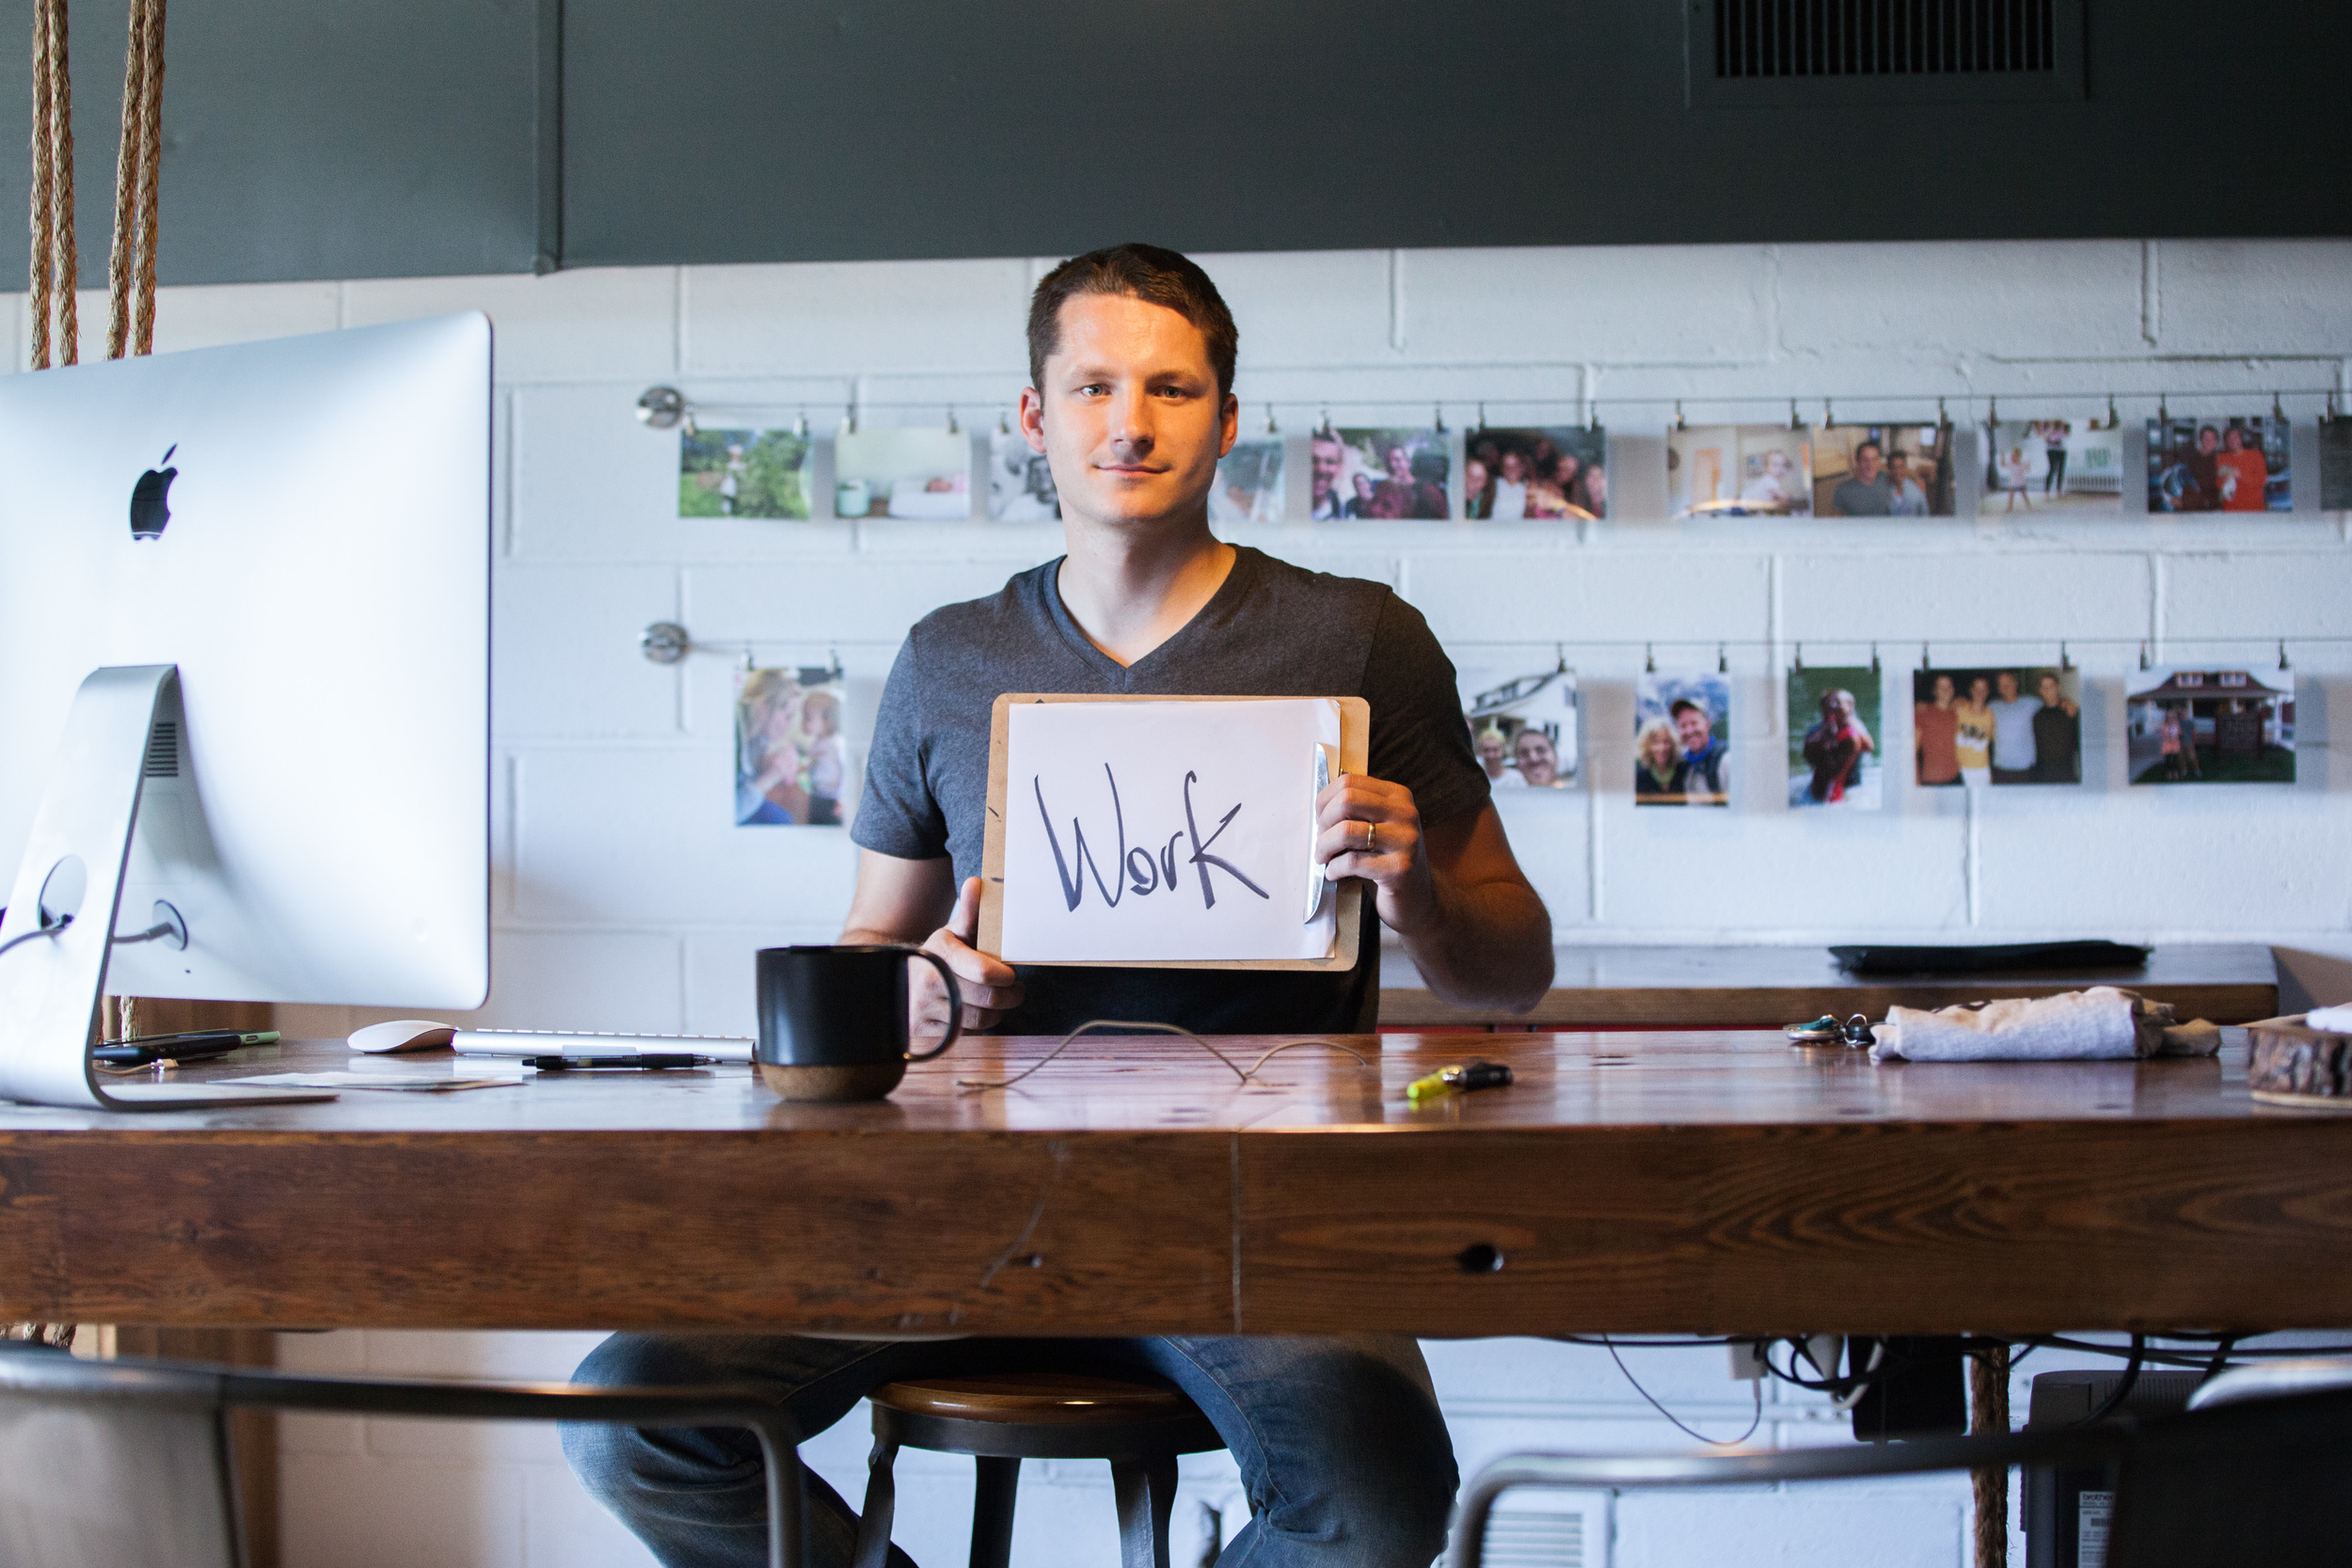 Man sitting at a desk holding a sign that says work.